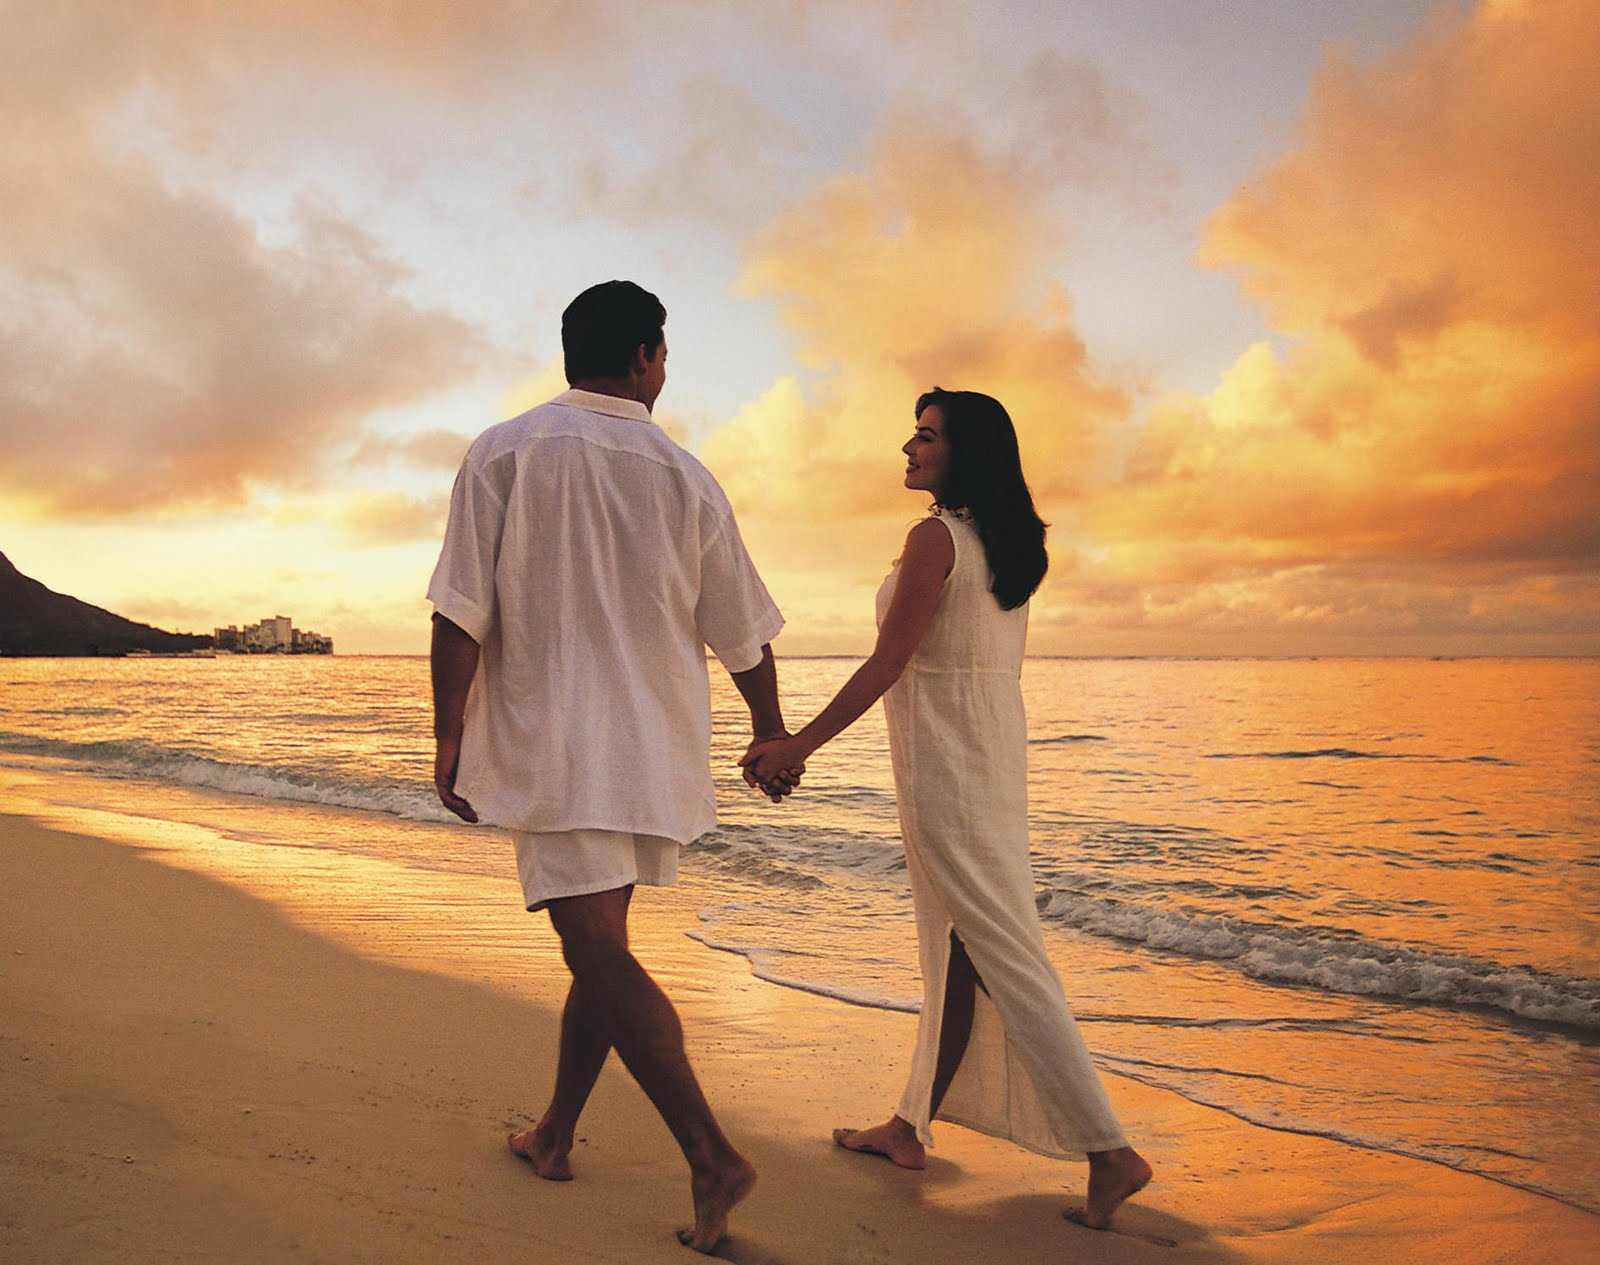 couple on beach image love couple kiss on beach wallpaper